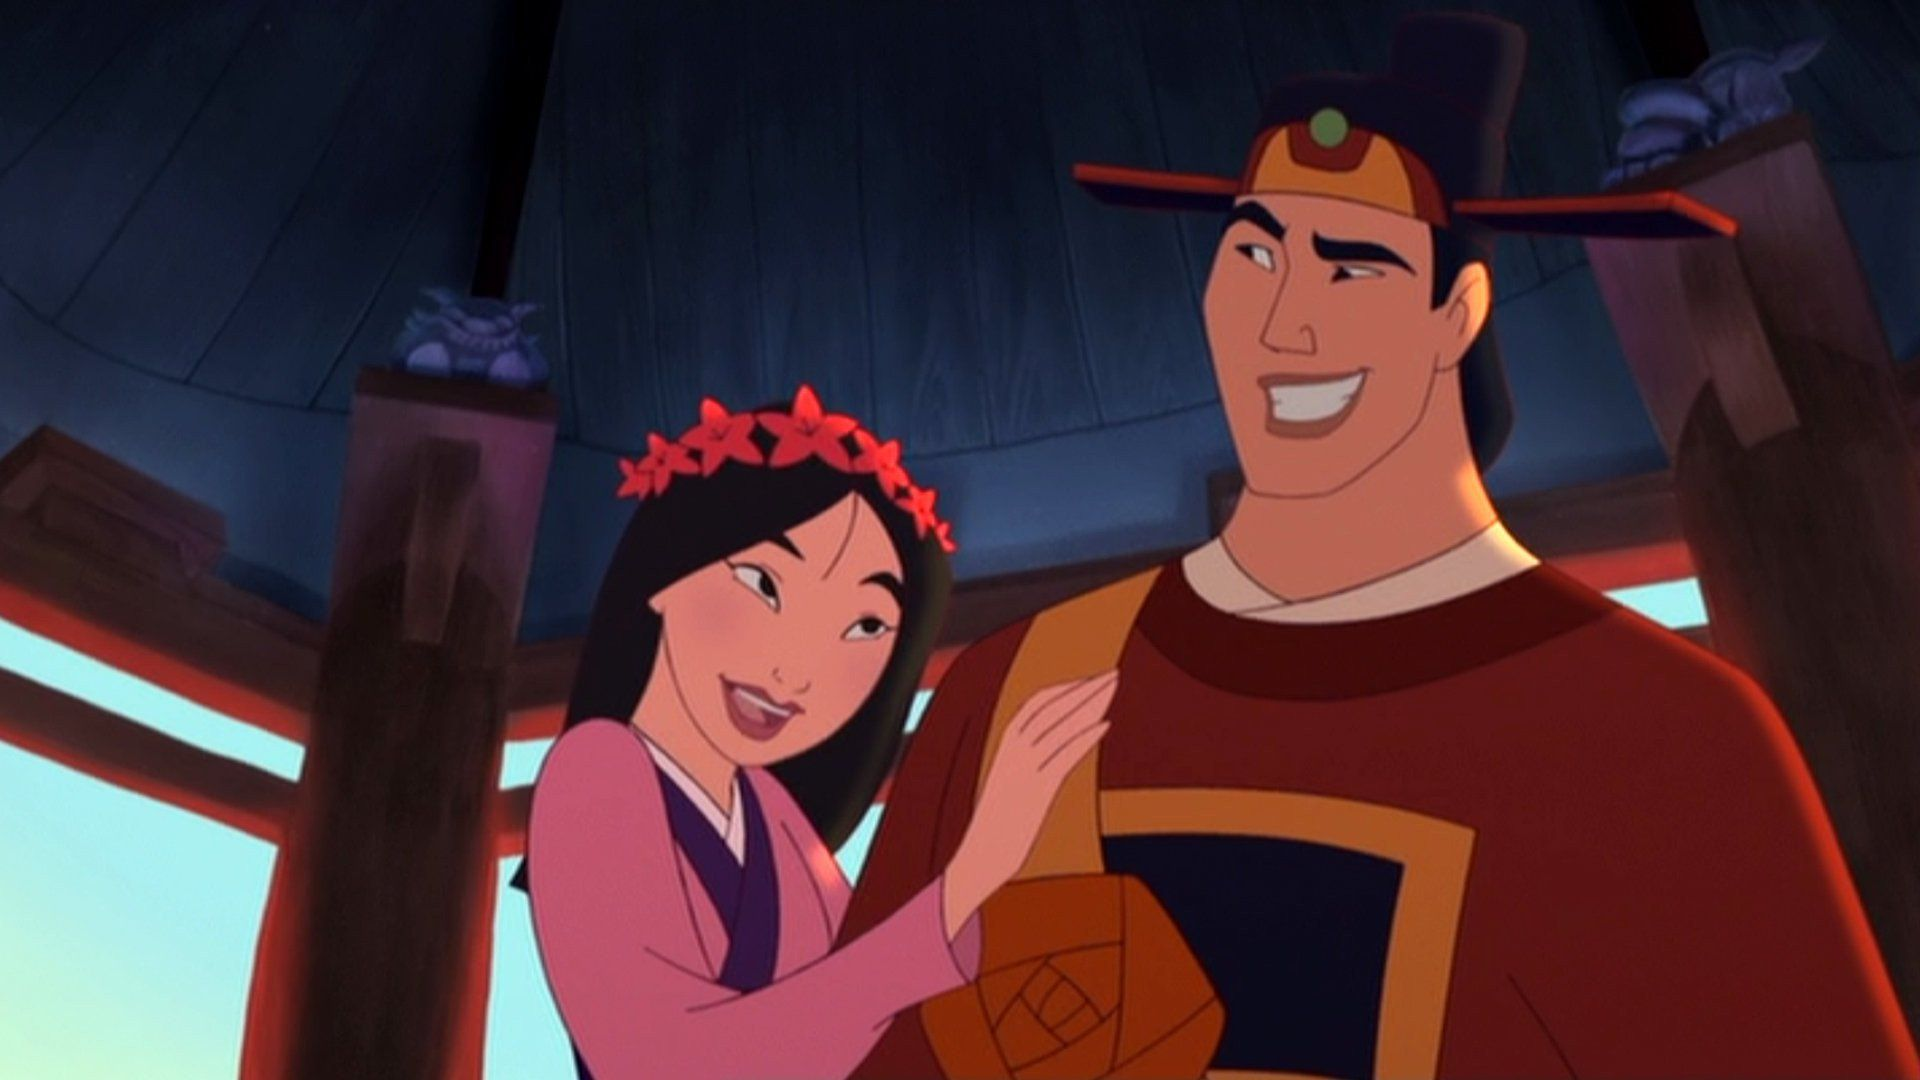 Disney Cut Mulan 2020 Movie Kiss Scene To Appease China